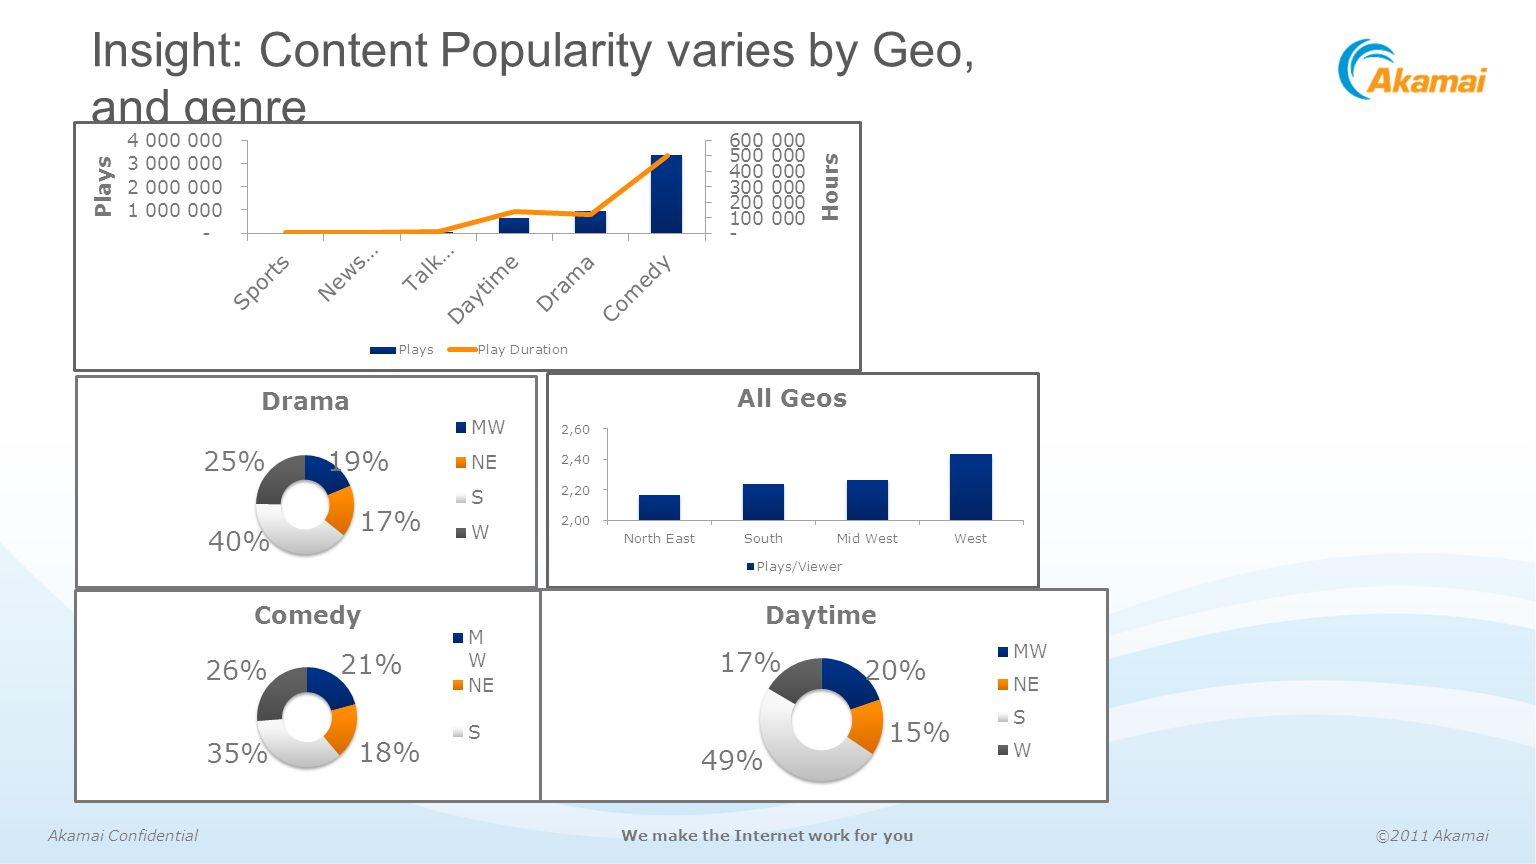 Insight: Content Popularity varies by Geo, and genre